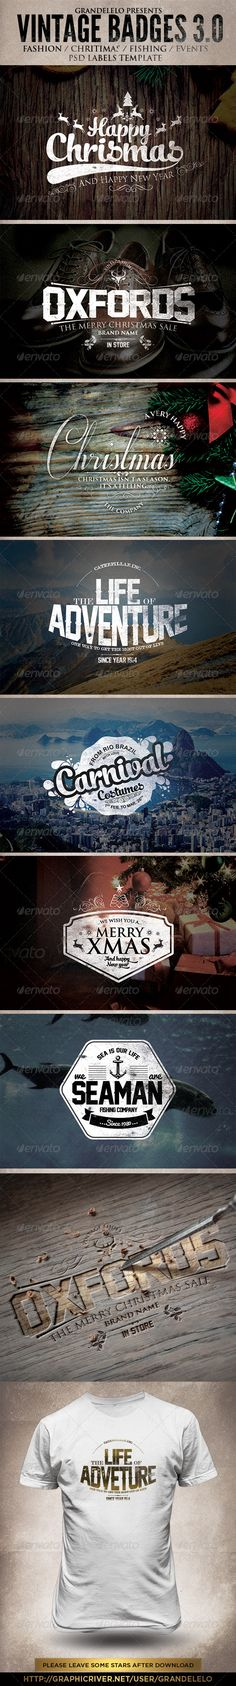 Buy Christmas and Other Vintage Badges by grandelelo on GraphicRiver. This is a Psd template Lables, logos, stamps, Fashion / Chritimas / Fishing / events or for retro posters or print. Vintage Typography, Graphic Design Typography, Logo Design, Retro Design, Cool Poster Designs, Cool Posters, Retro Posters, Christmas Signs, Vintage Christmas